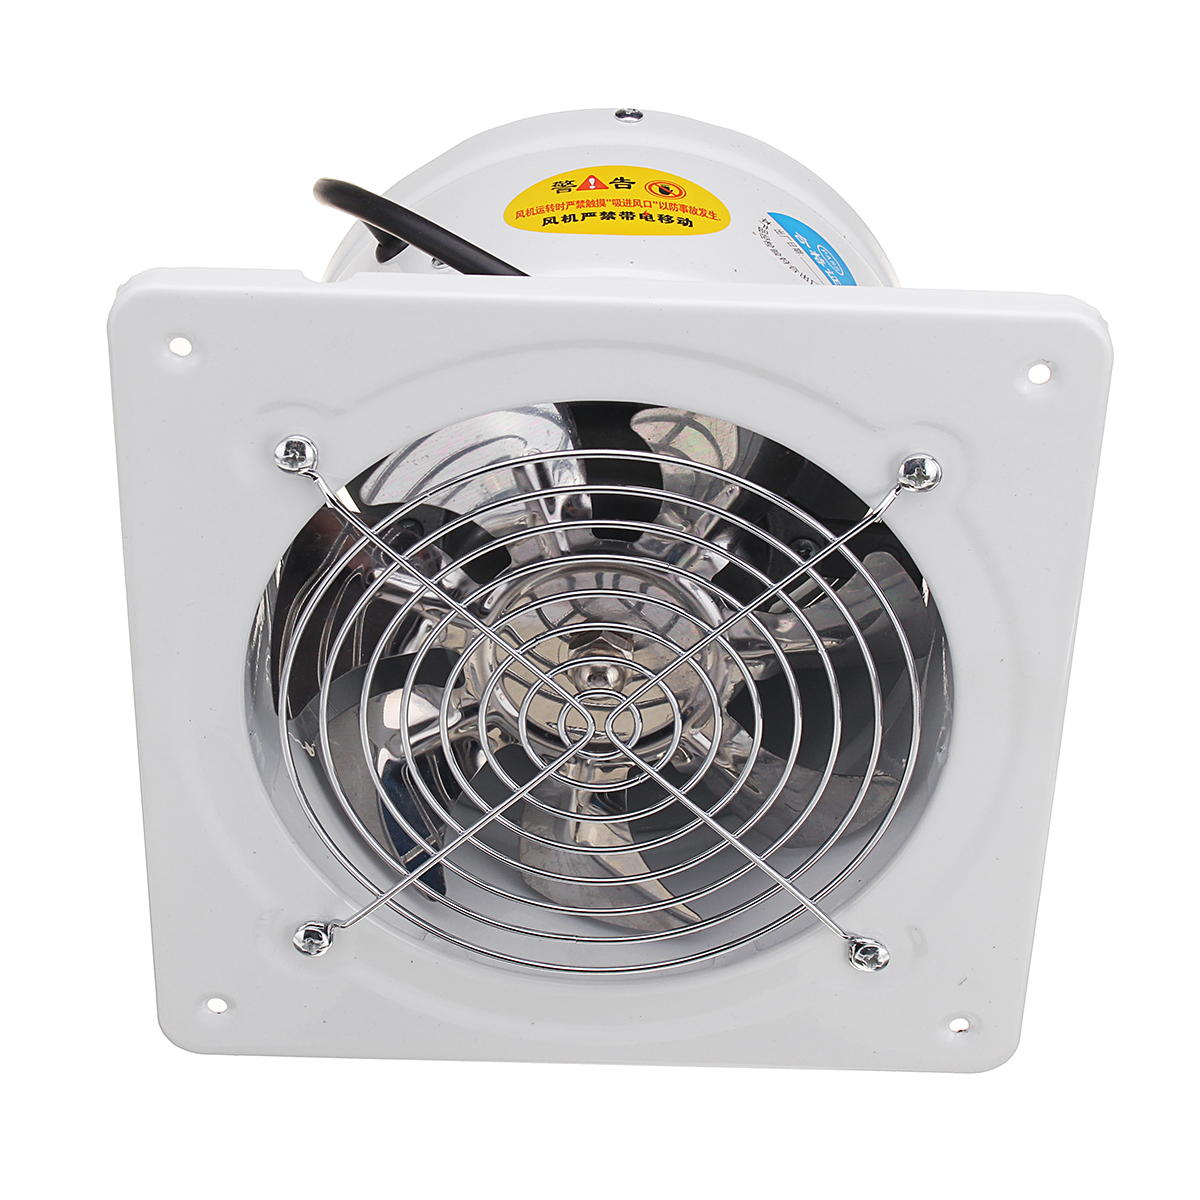 6 inch 40w inline duct booster fan extractor exhaust and intake vent